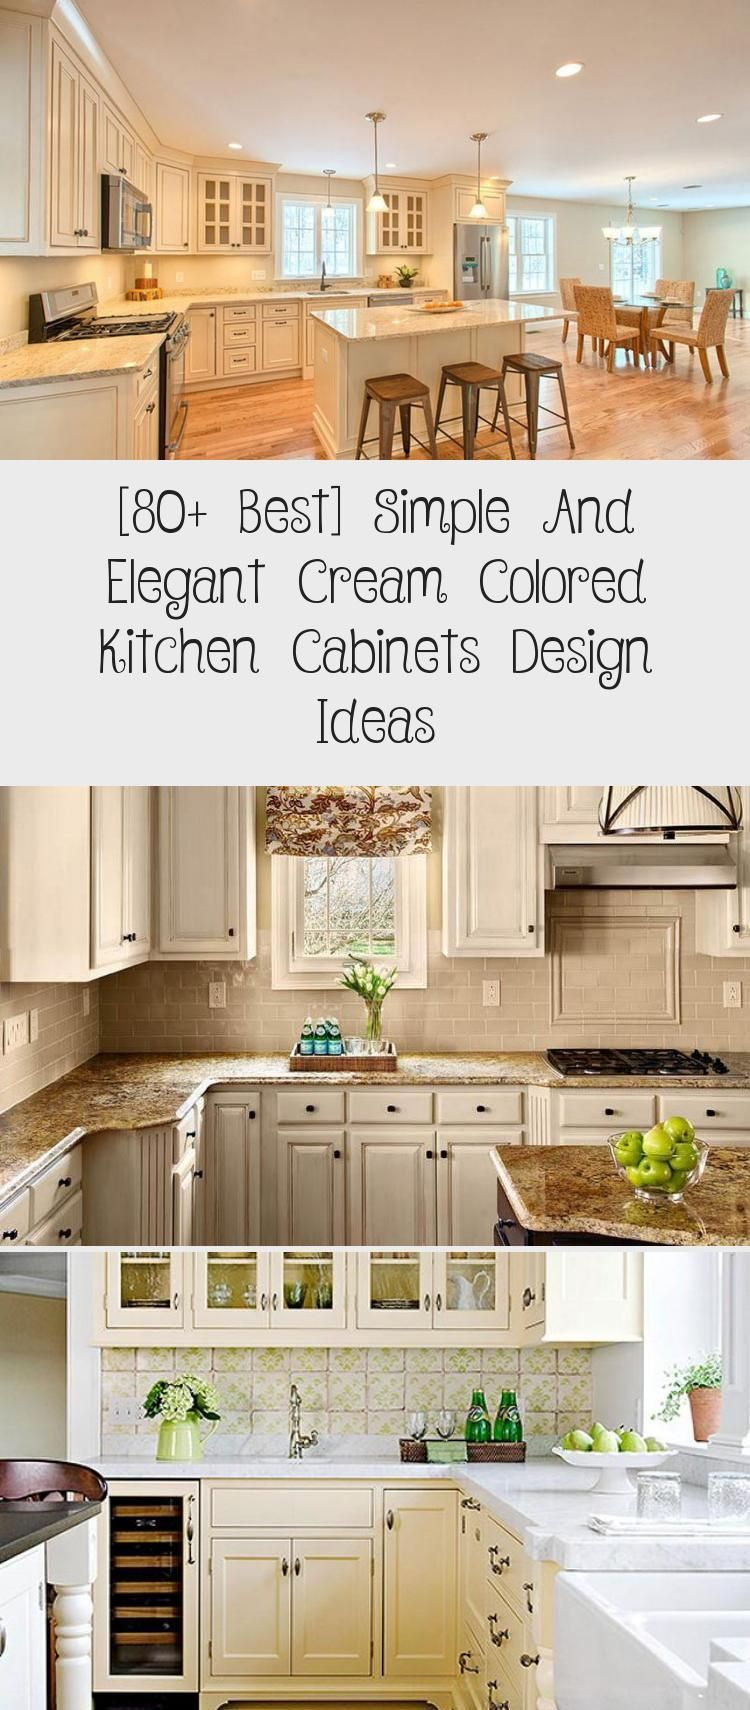 80 Best Simple And Elegant Cream Colored Kitchen Cabinets Design Ideas Kt Cabinets Cr In 2020 Simple Kitchen Cabinets Kitchen Cabinets Kitchen Cabinet Styles